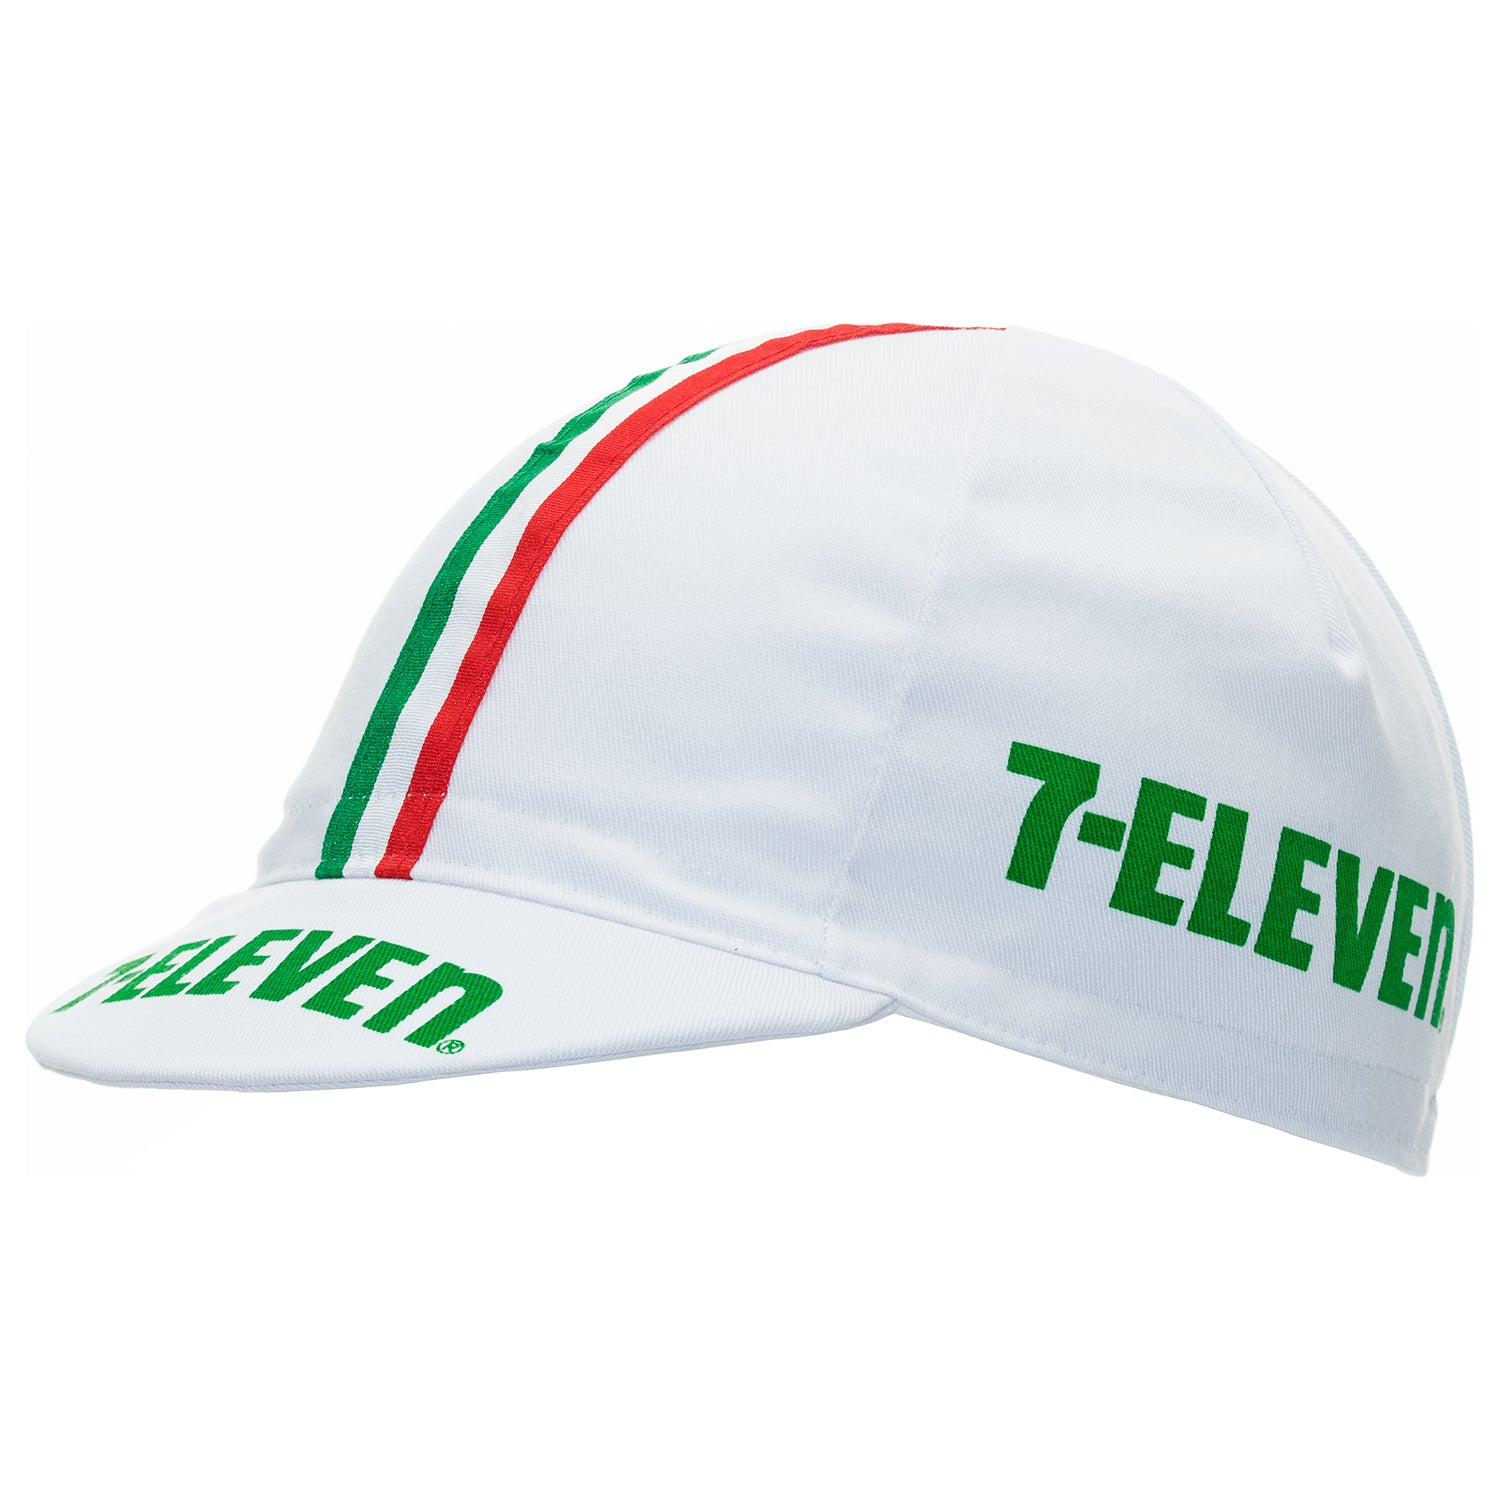 7-Eleven Retro Cotton Cycling Cap